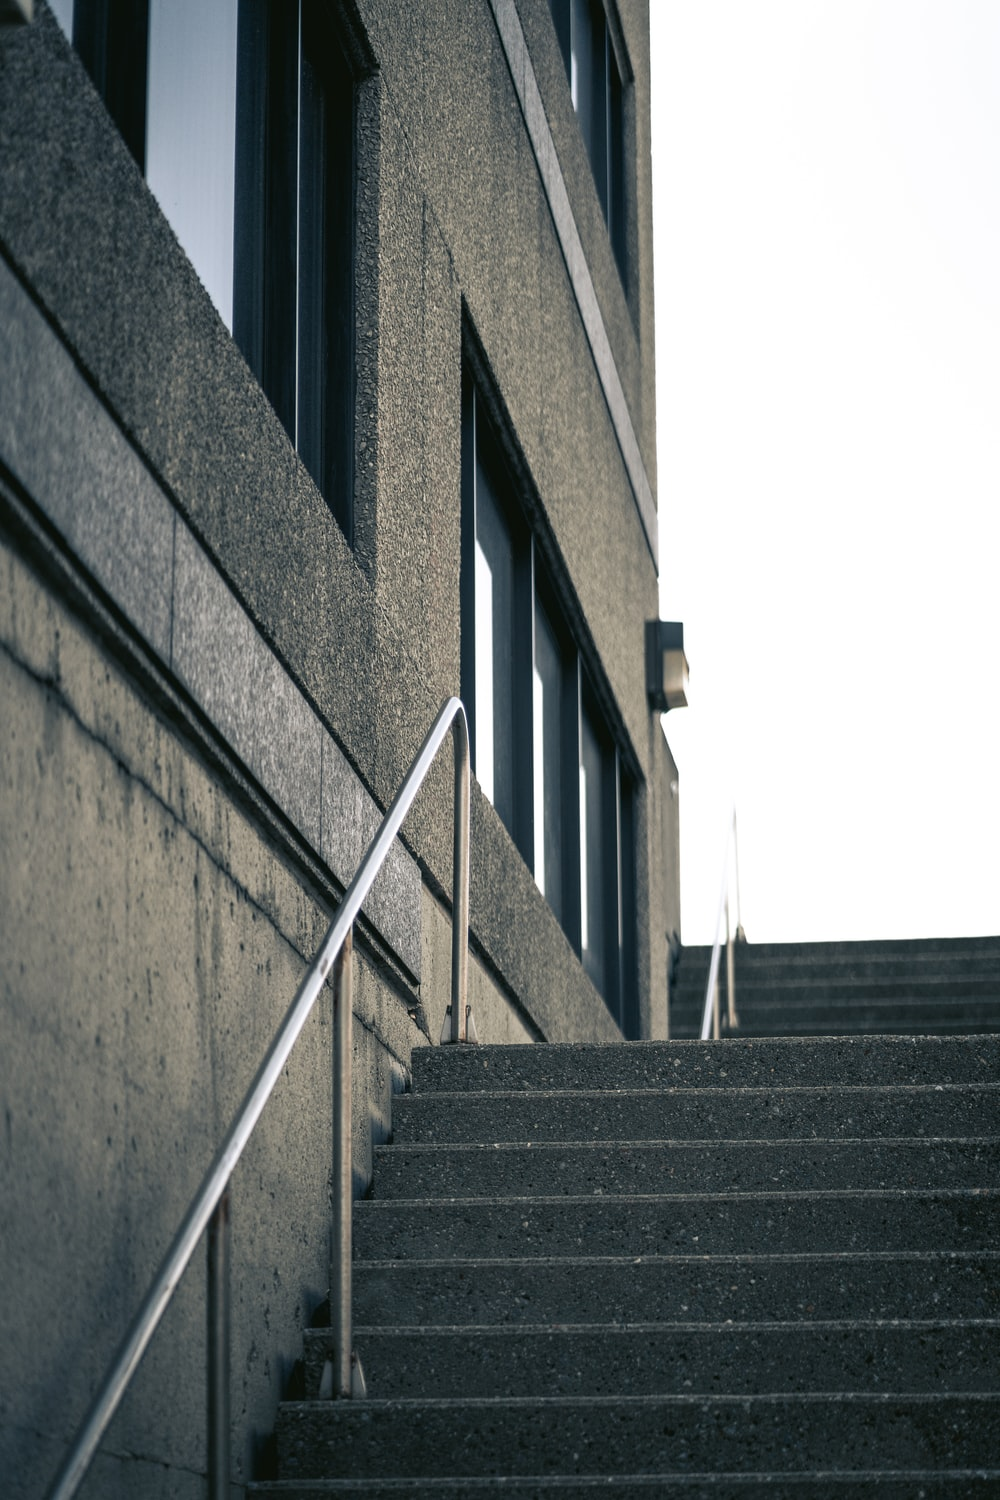 black staircase in front of brown concrete building